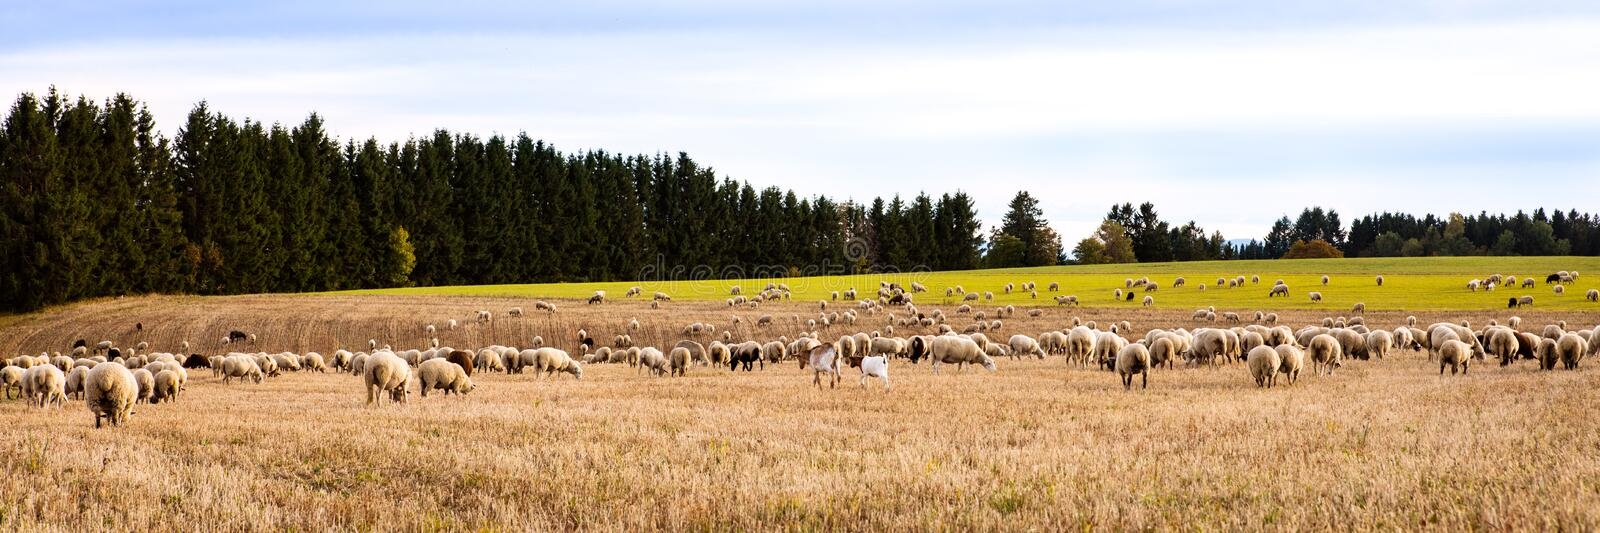 Herd of sheeps and goats on a field, Panorama royalty free stock images